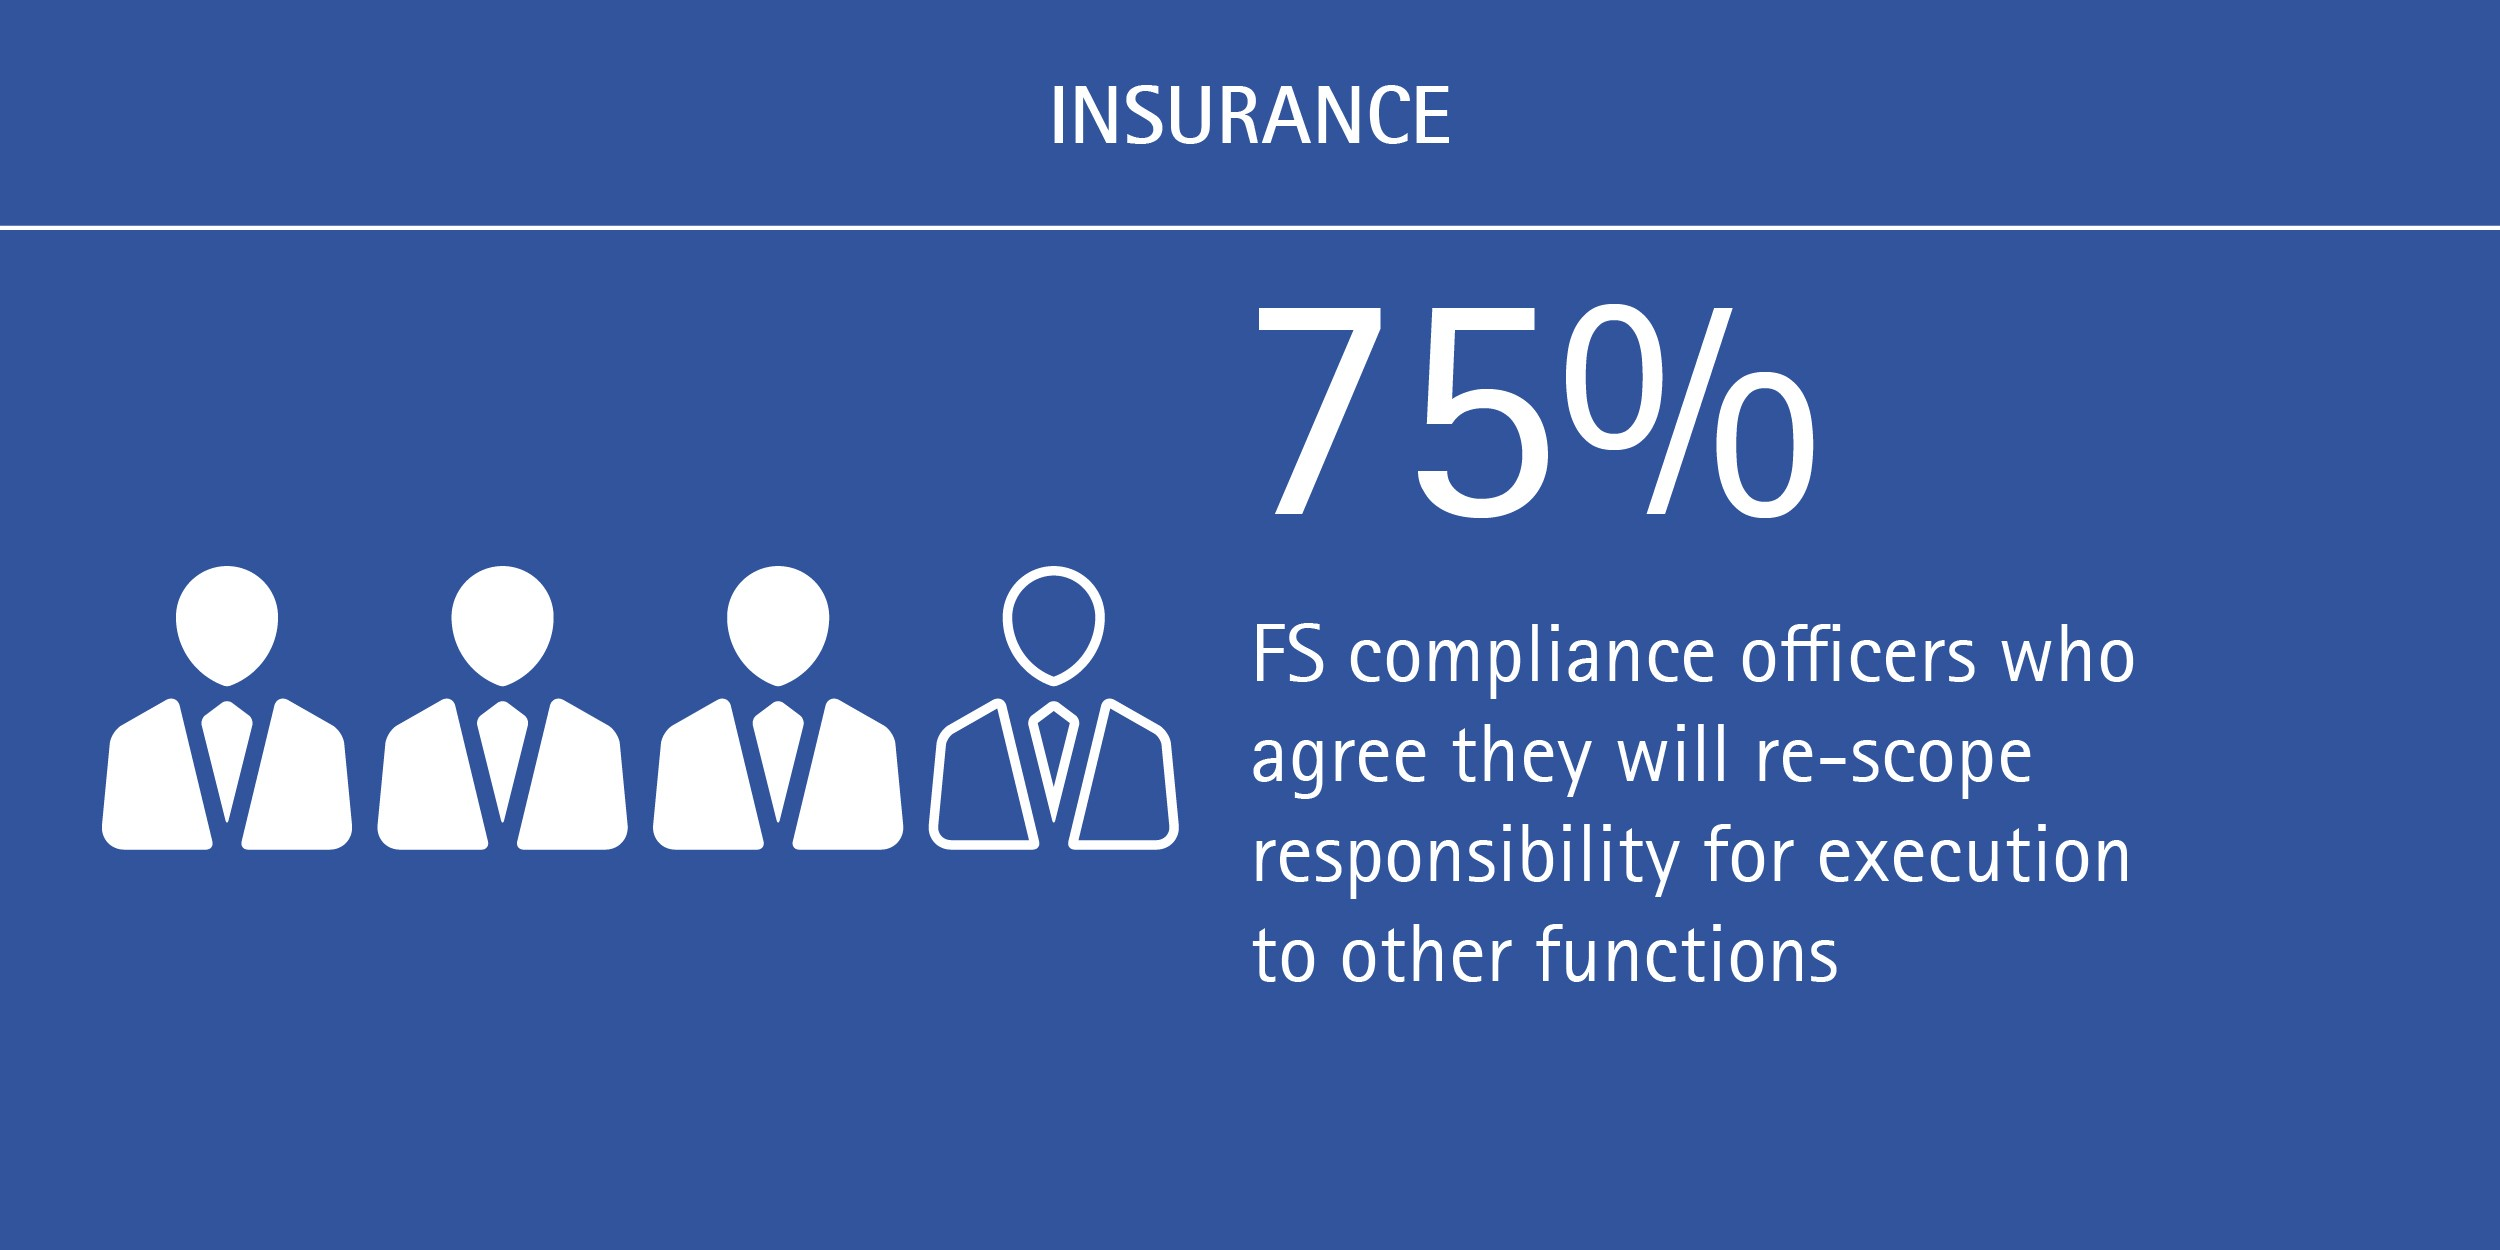 Shifts underway in FS compliance reporting lines: 75% of FS compliance officers agree they will re-scope responsibility for execution to other functions